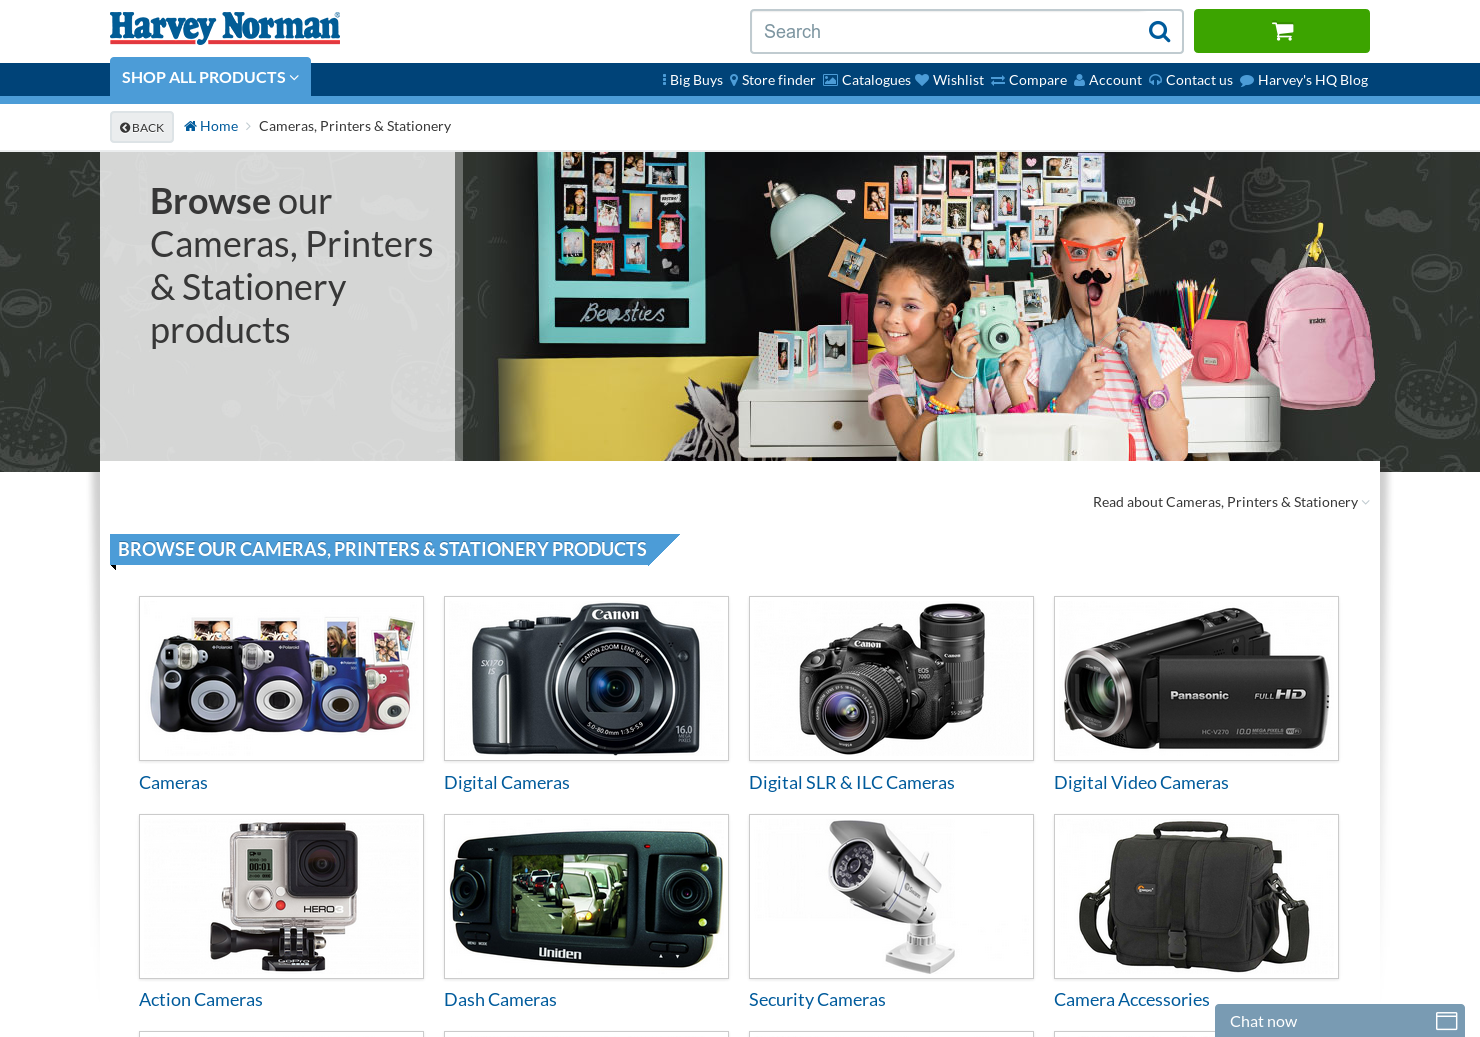 Harvey Norman Camera Sale - Canon 1200D $334 , Sony A5000 Mirrorless Camera with 16-50mm Lens